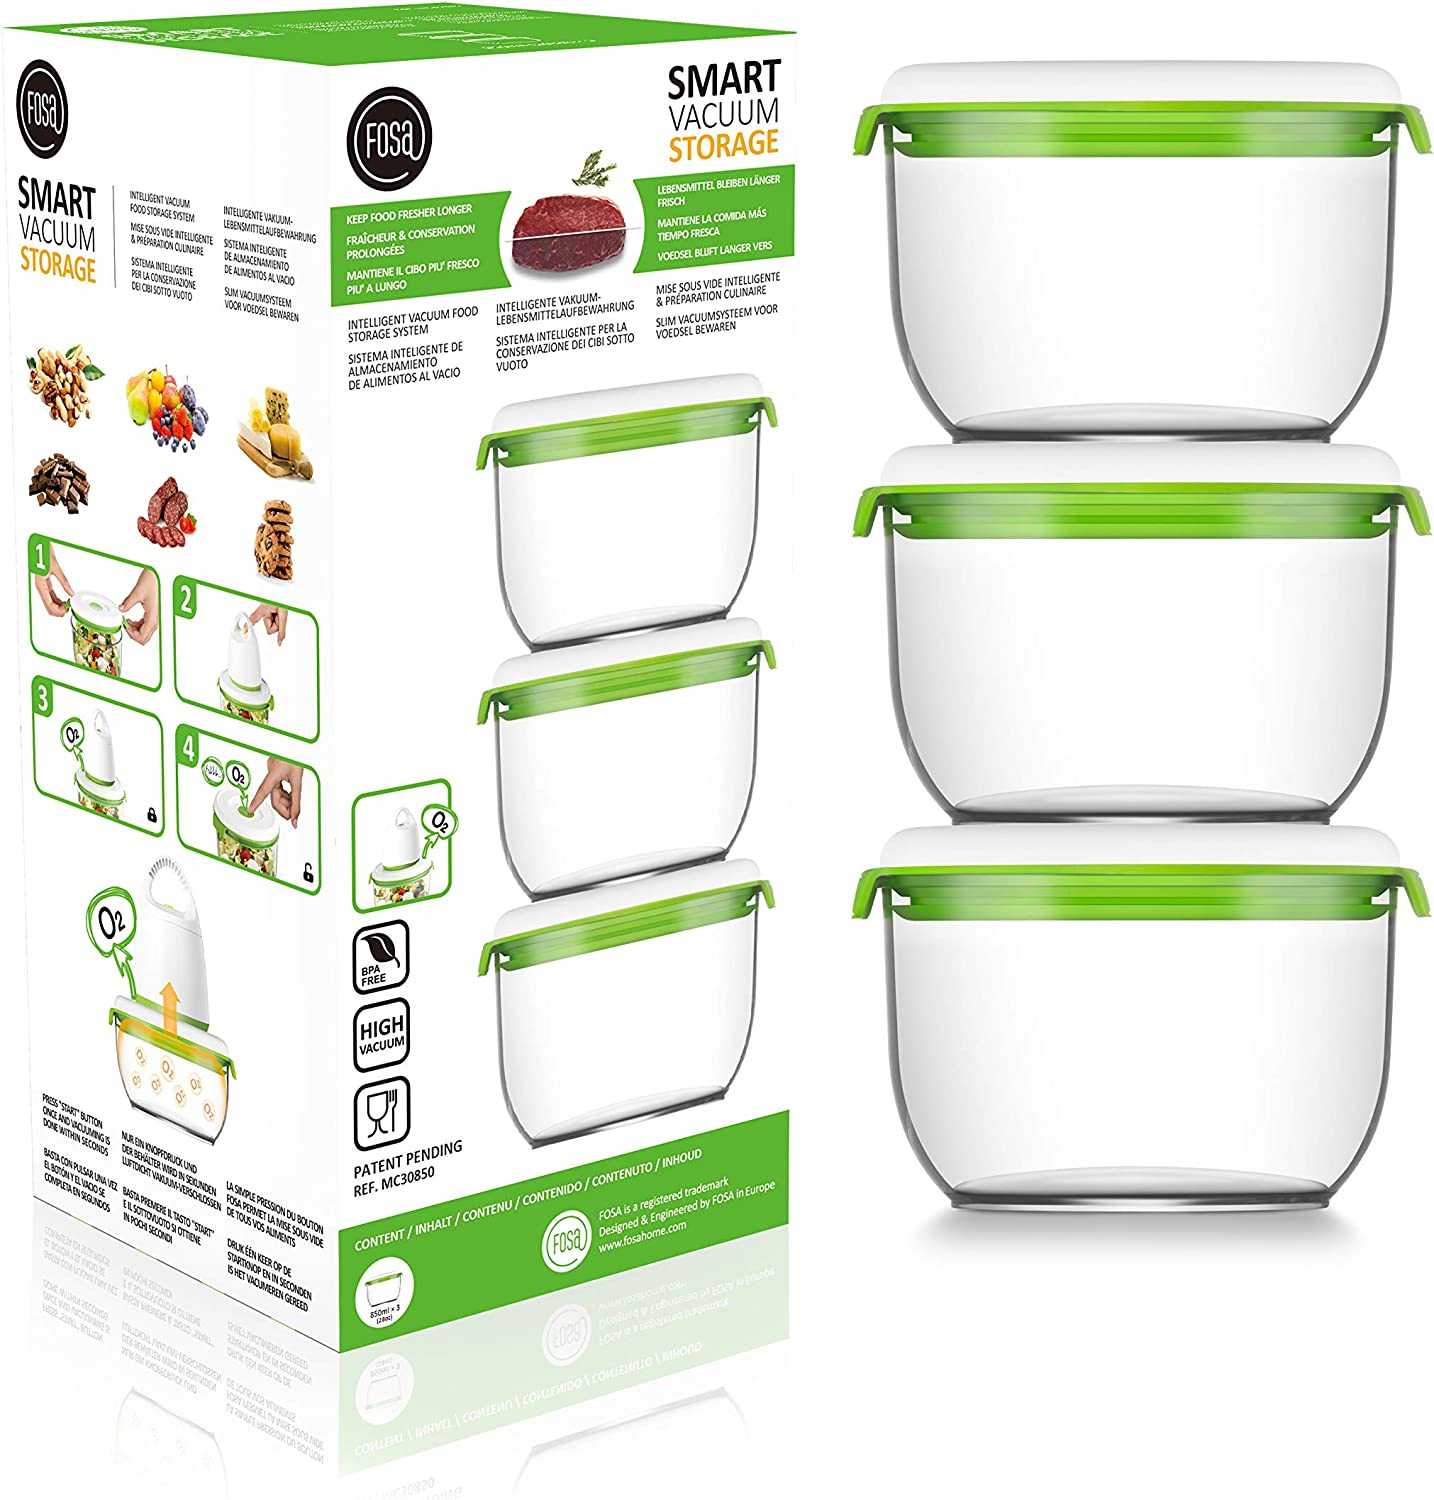 FOSa Vacuum Seal Food Storage System Reusable Medium Containers, 3 Pack, 28 oz Size